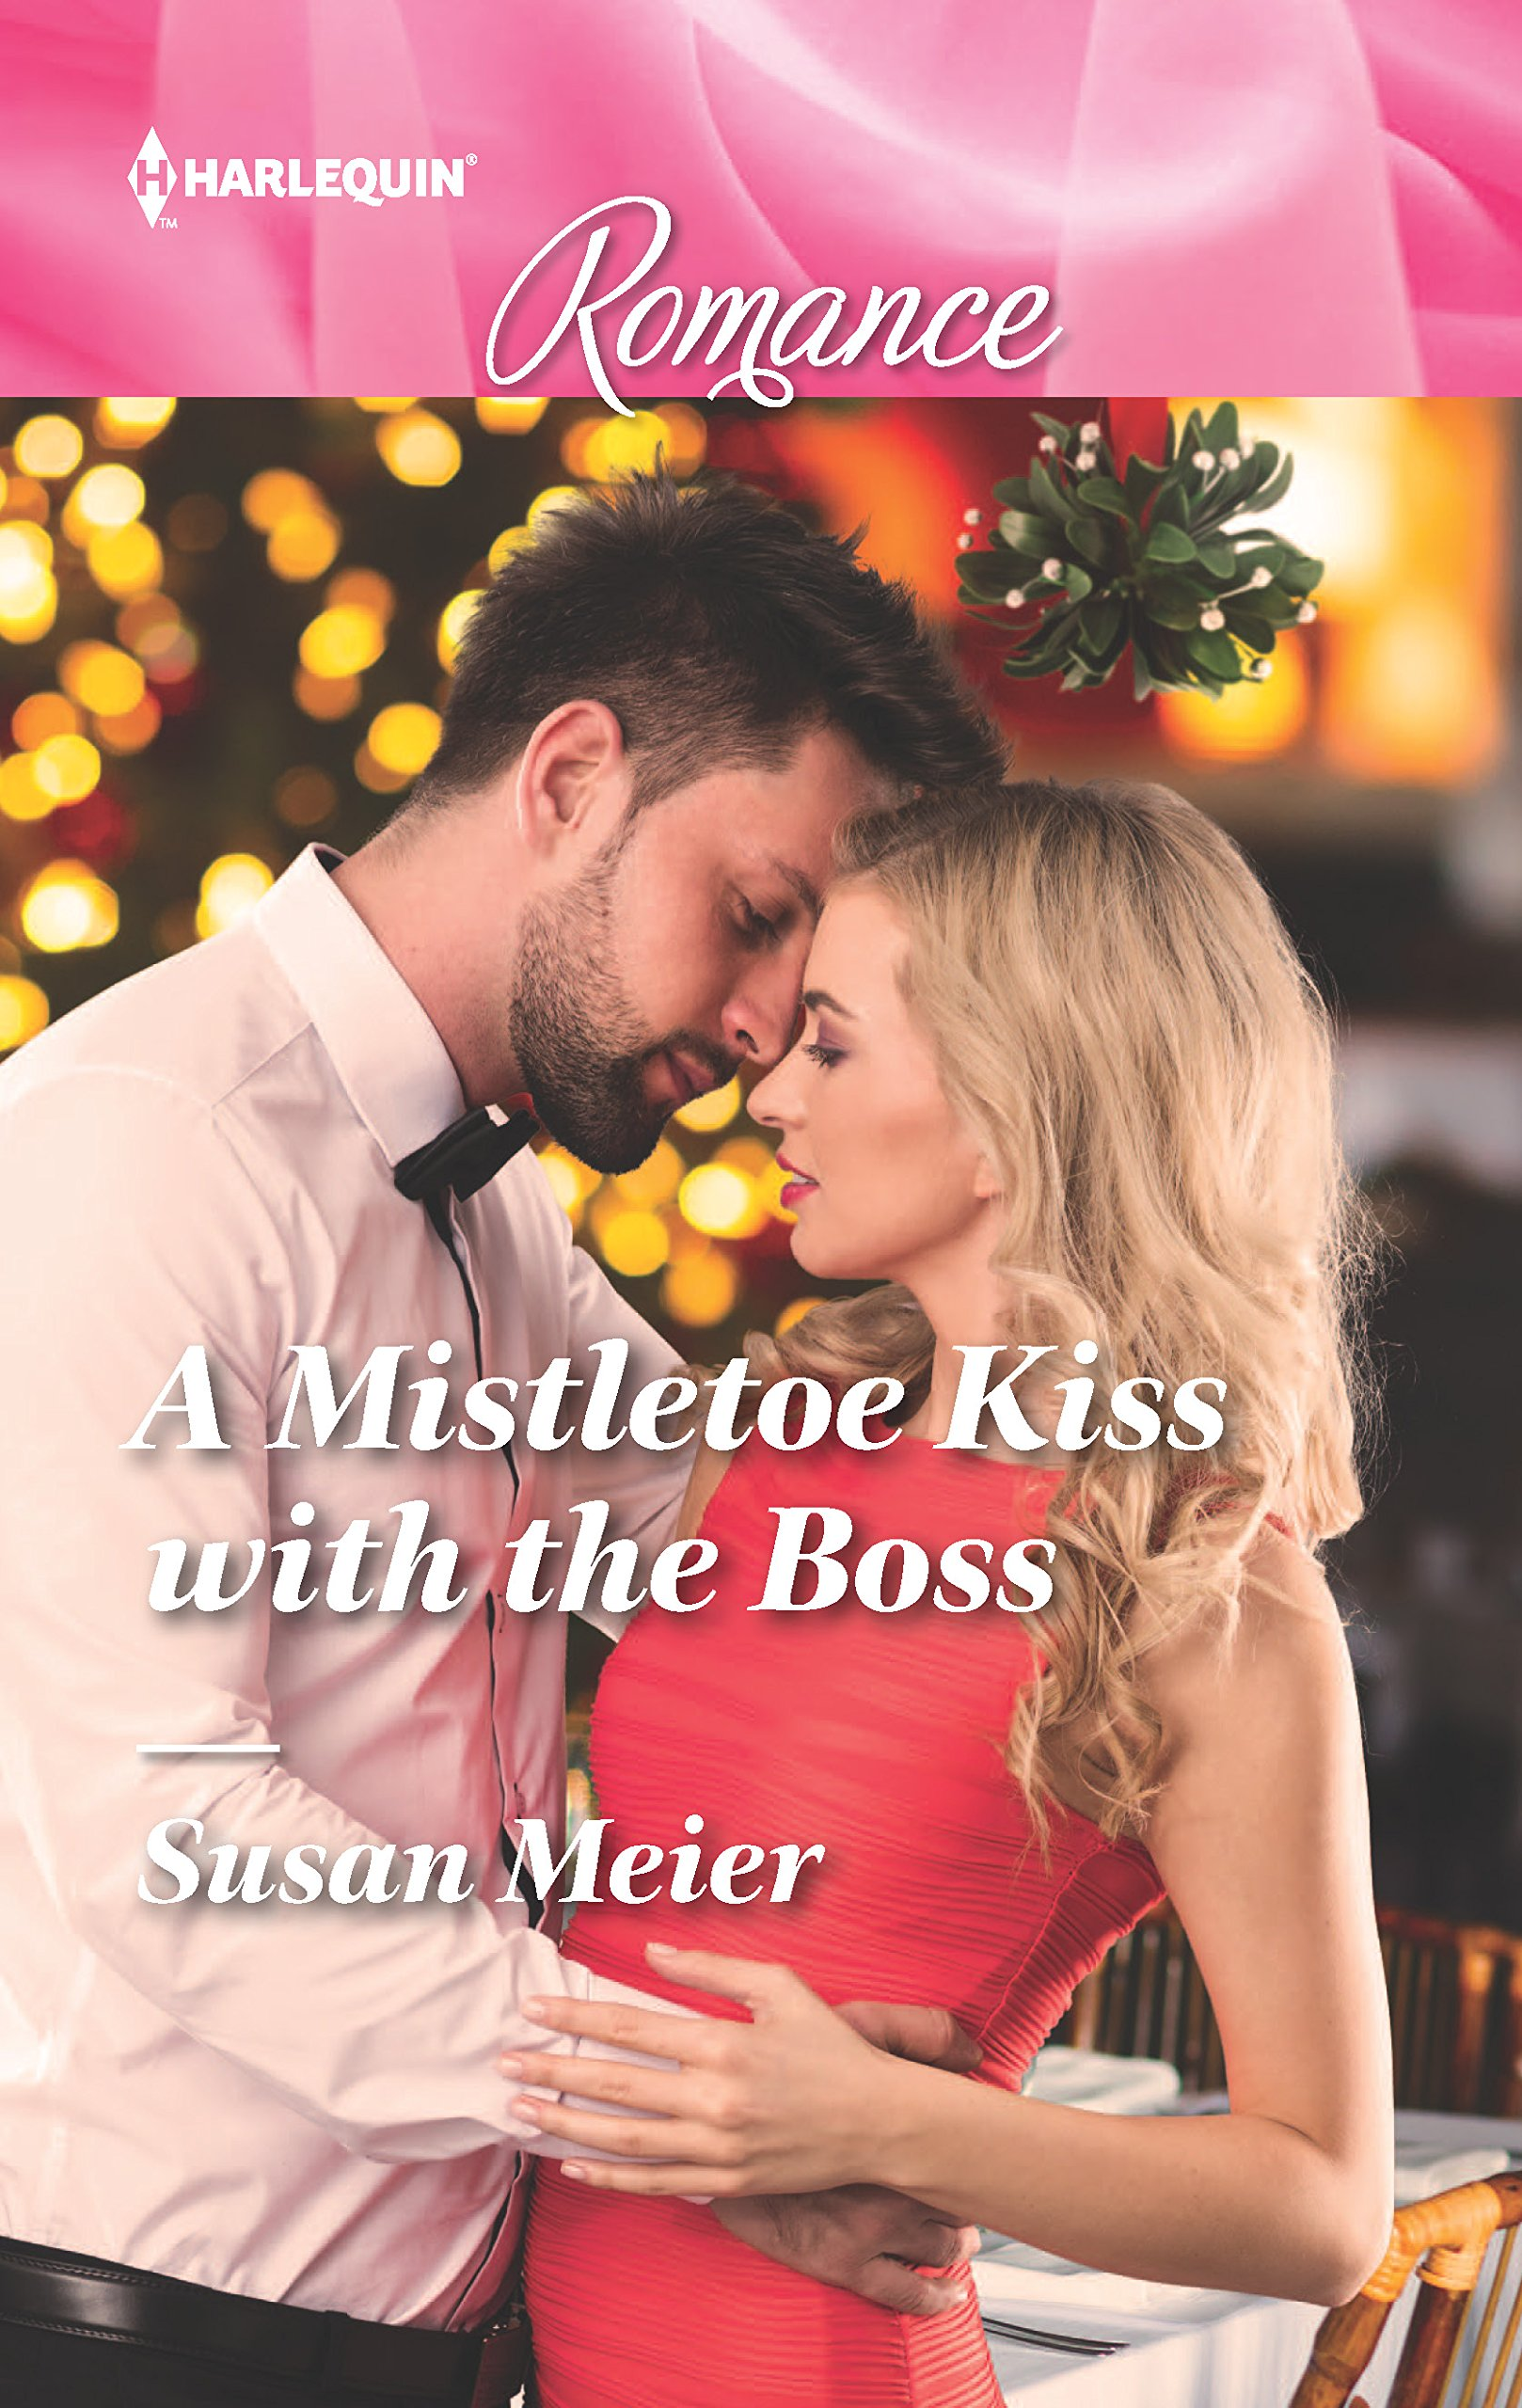 A Mistletoe Kiss with the Boss (Harlequin Romance)